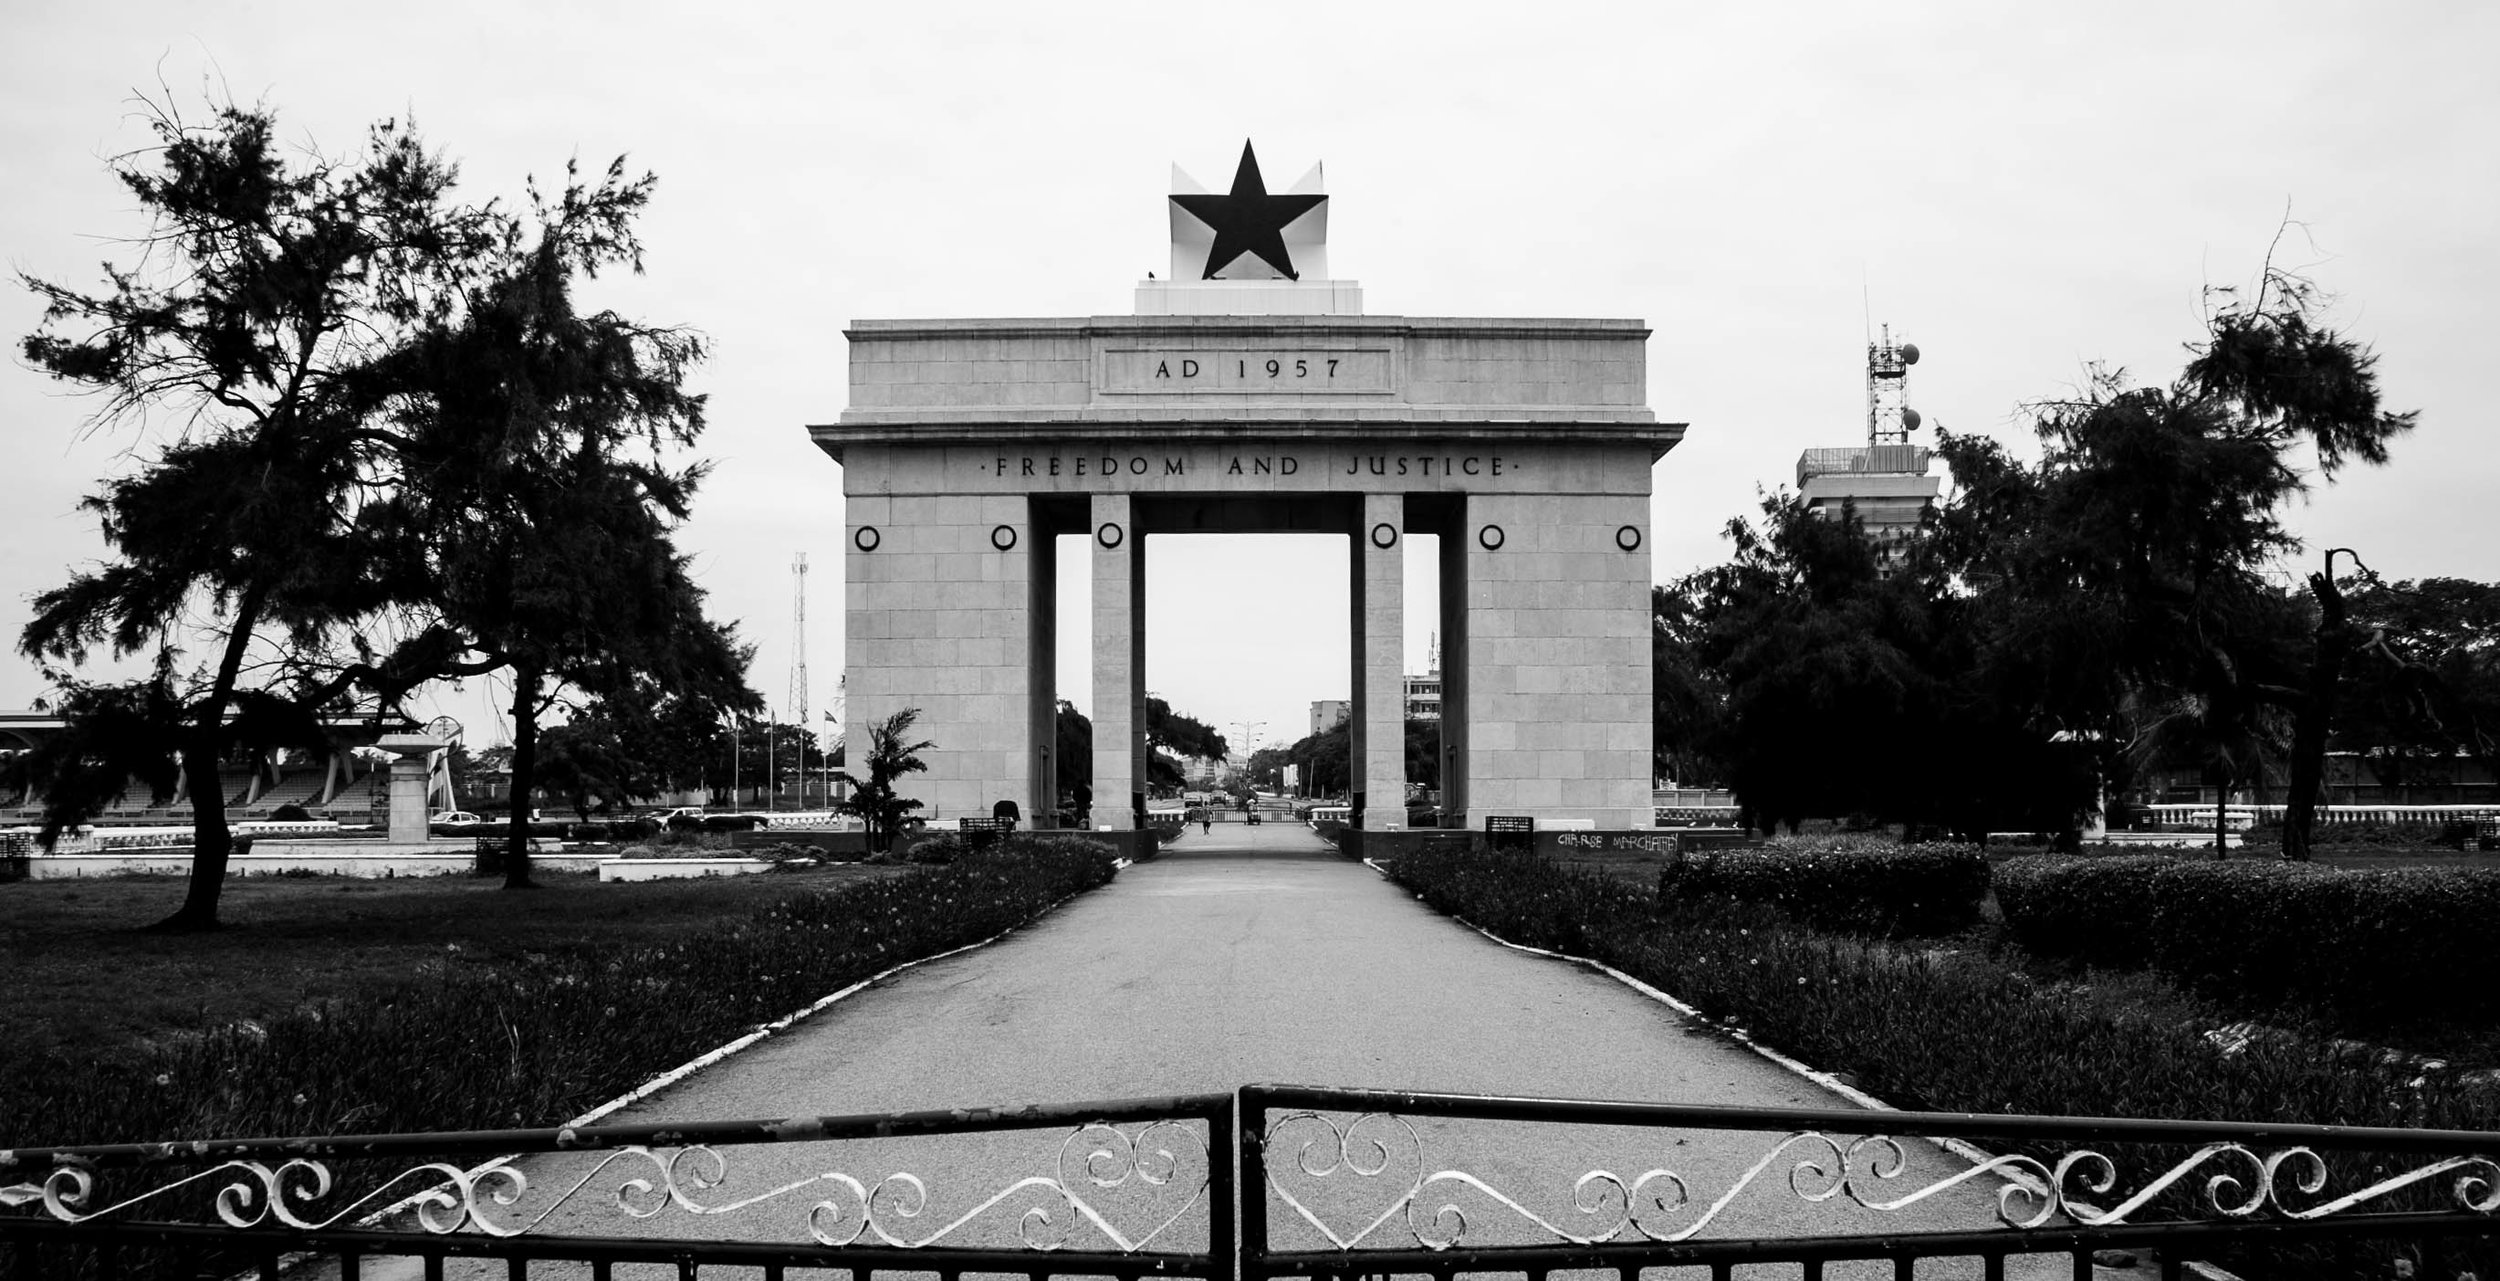 The archway commemorating the independence of Ghana in 1957.